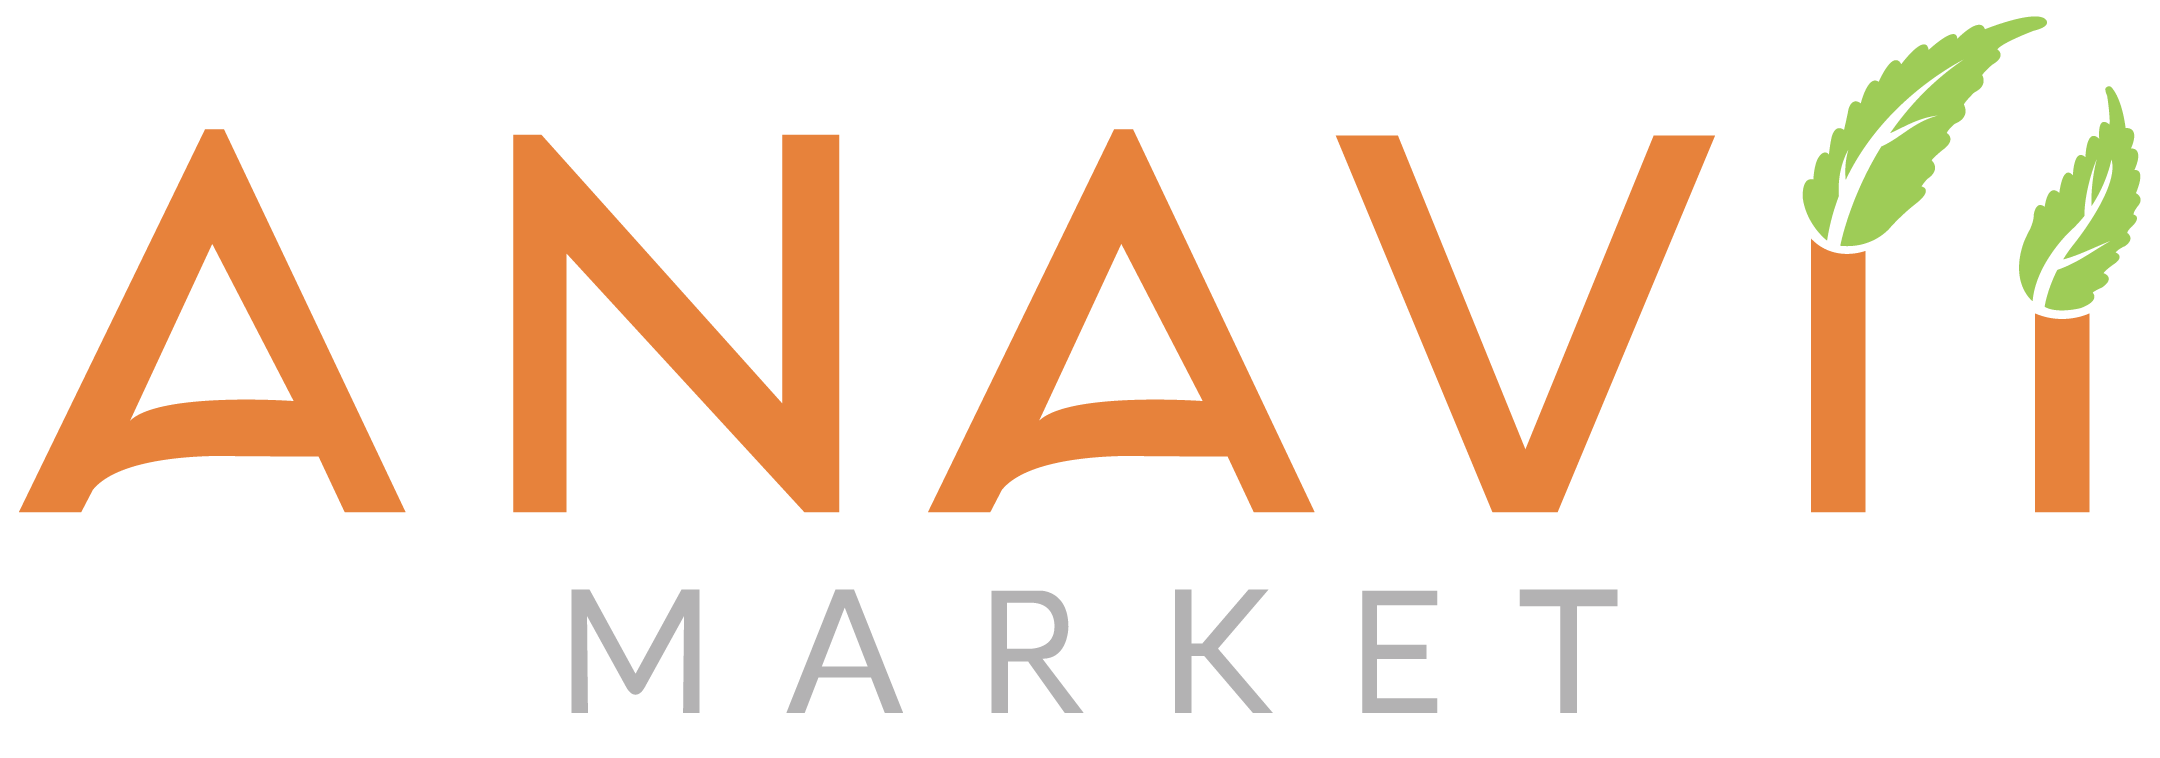 Anavii Market is a sponsor of Anslinger: The untold cannabis conspiracy